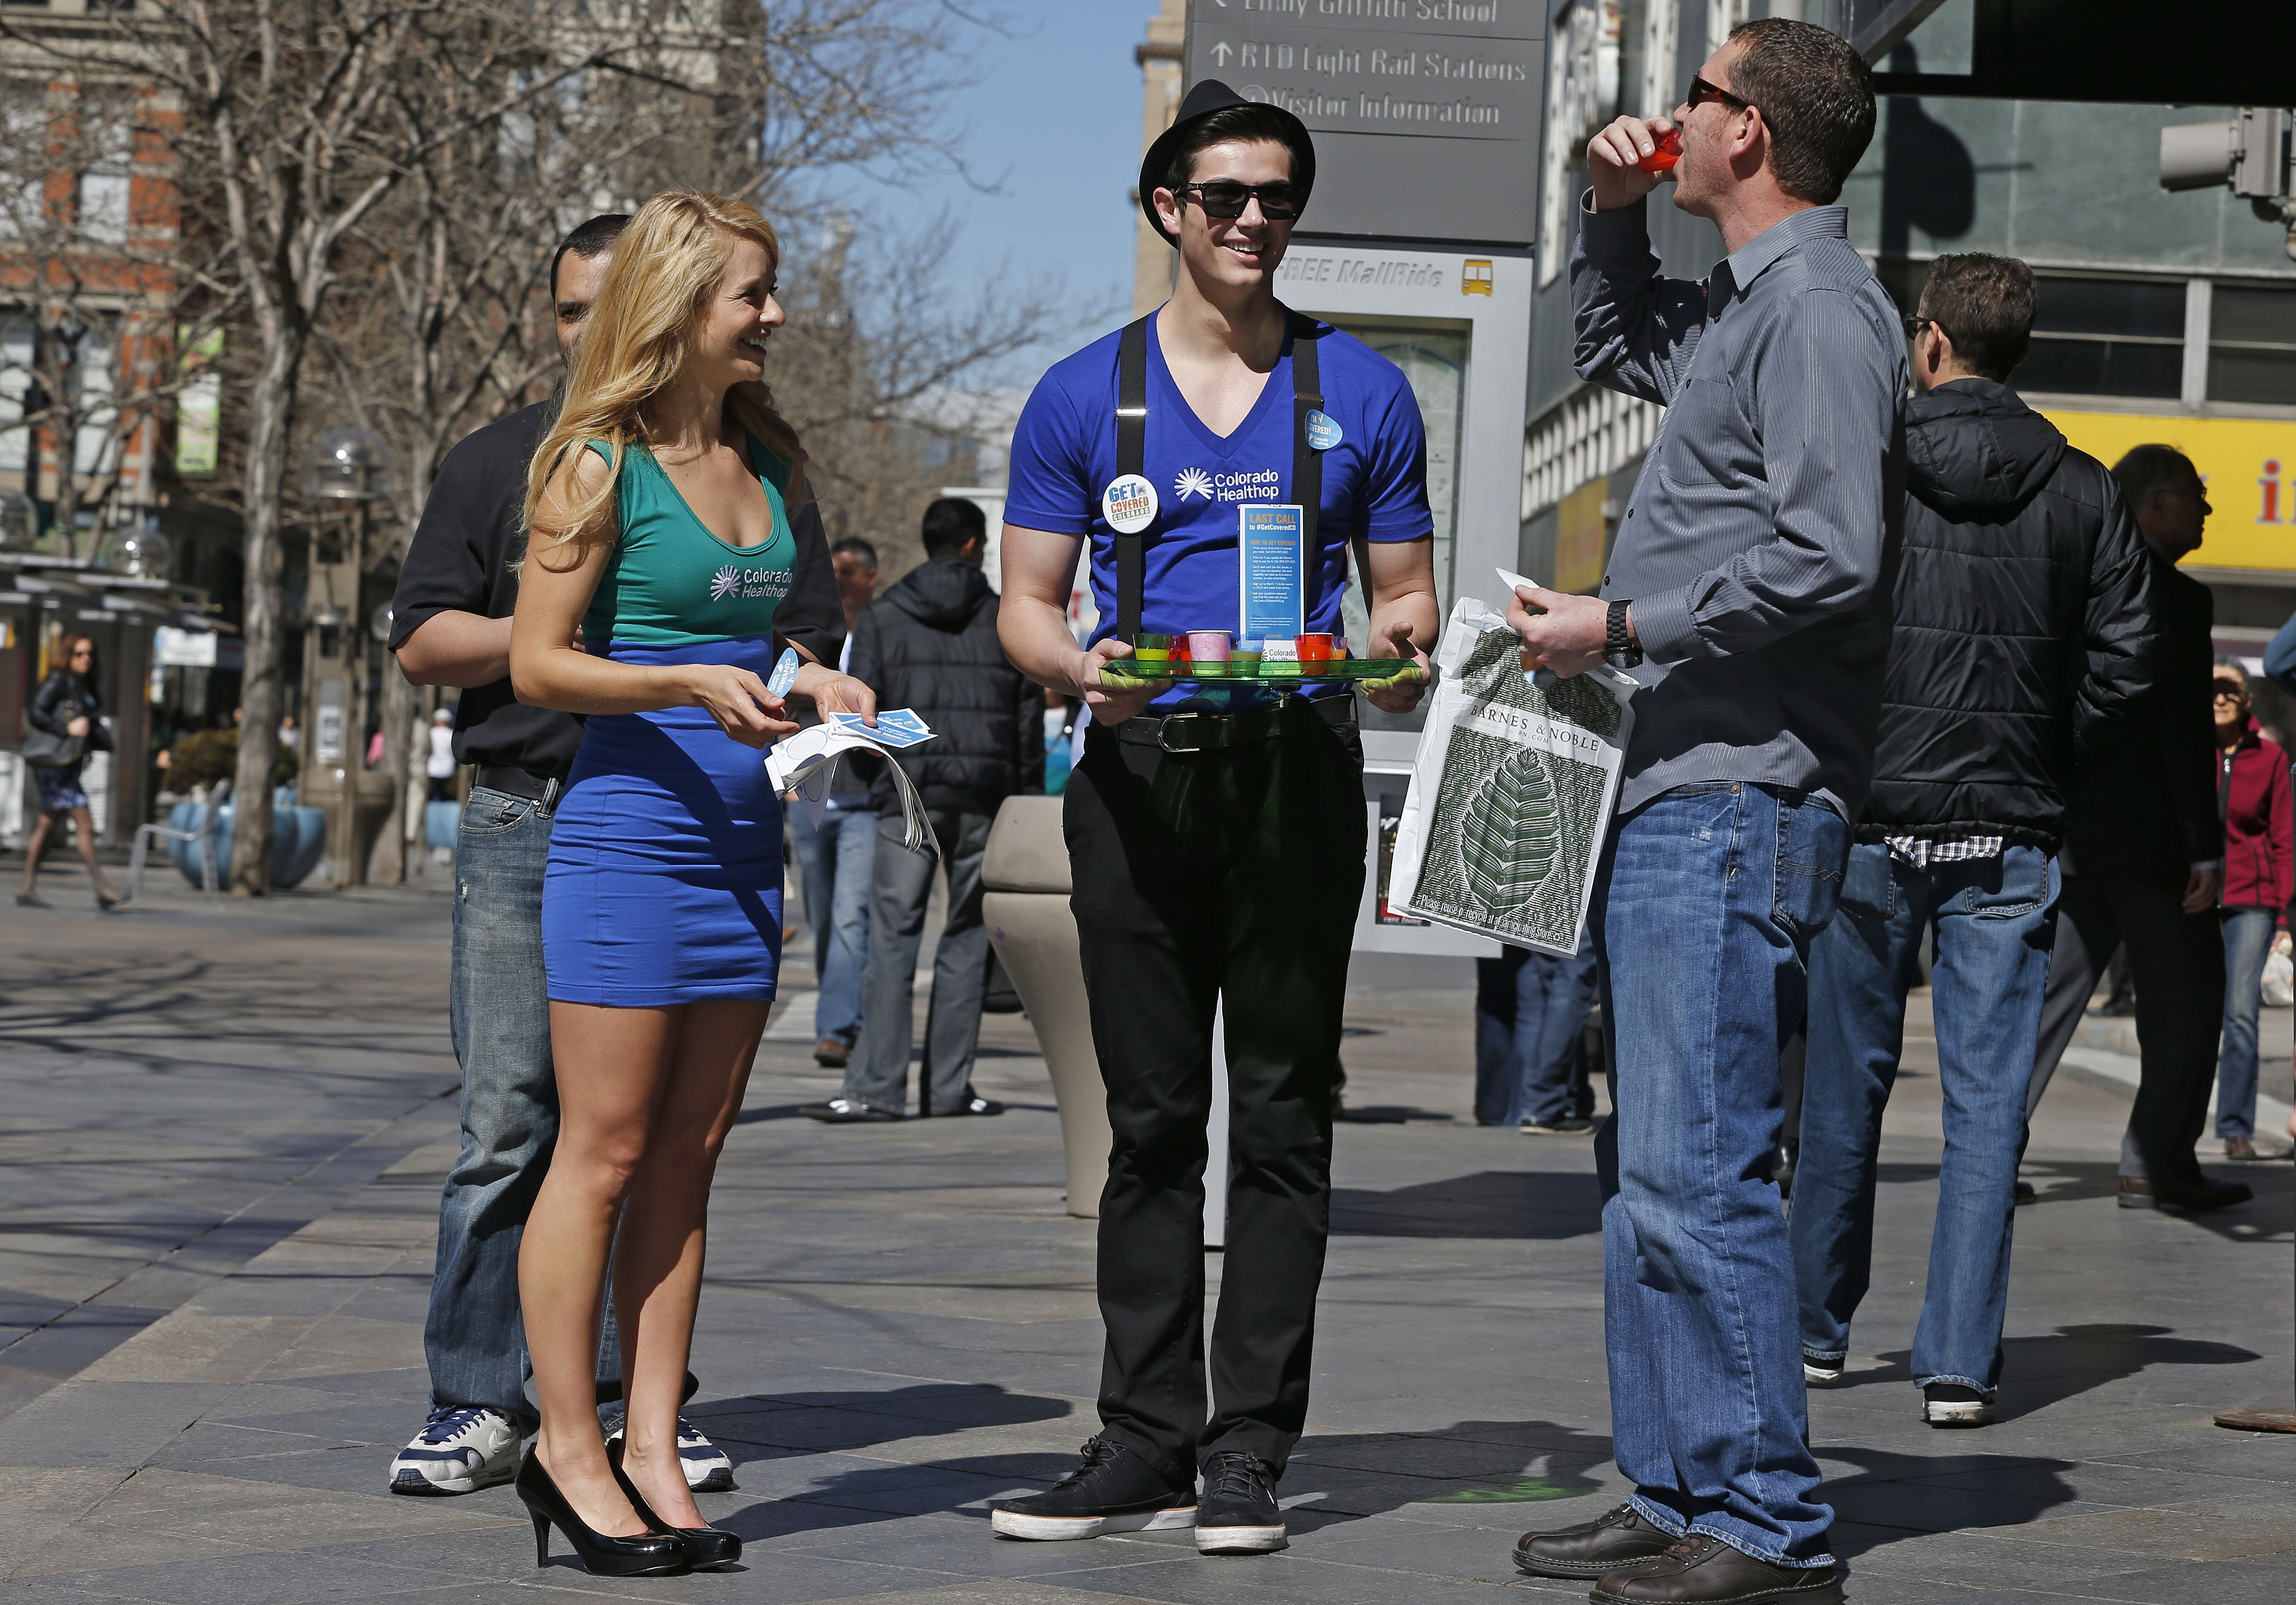 Photo: HealthOP workers hand out information (AP file)